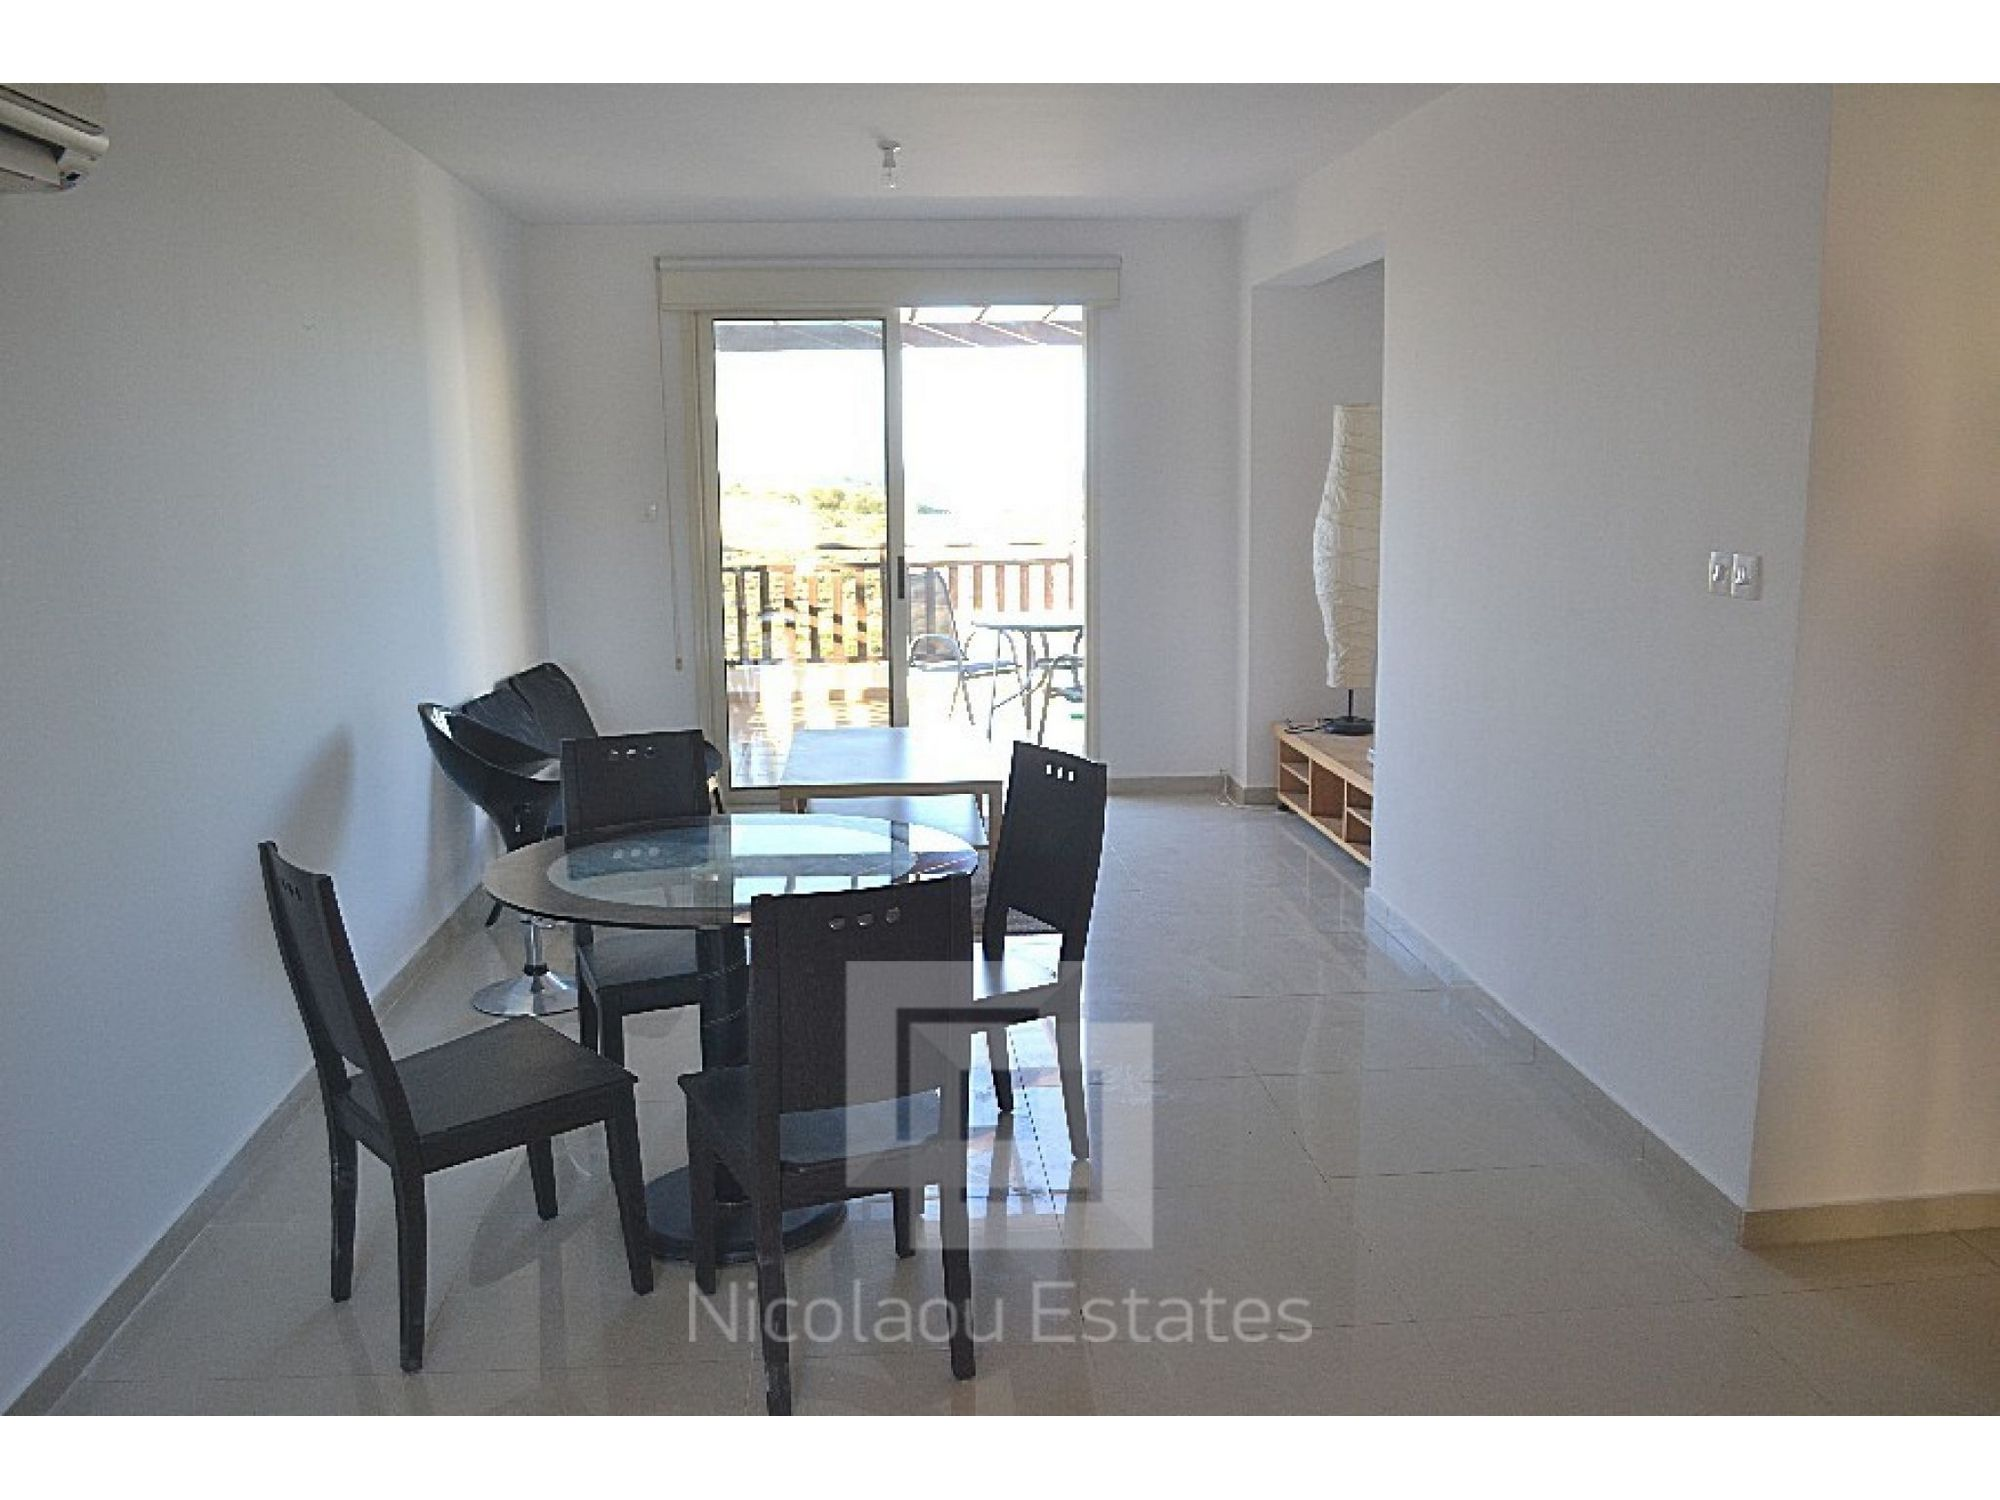 For sale two bedroom penthouse apartment for sale in for Penthouse apartment for sale